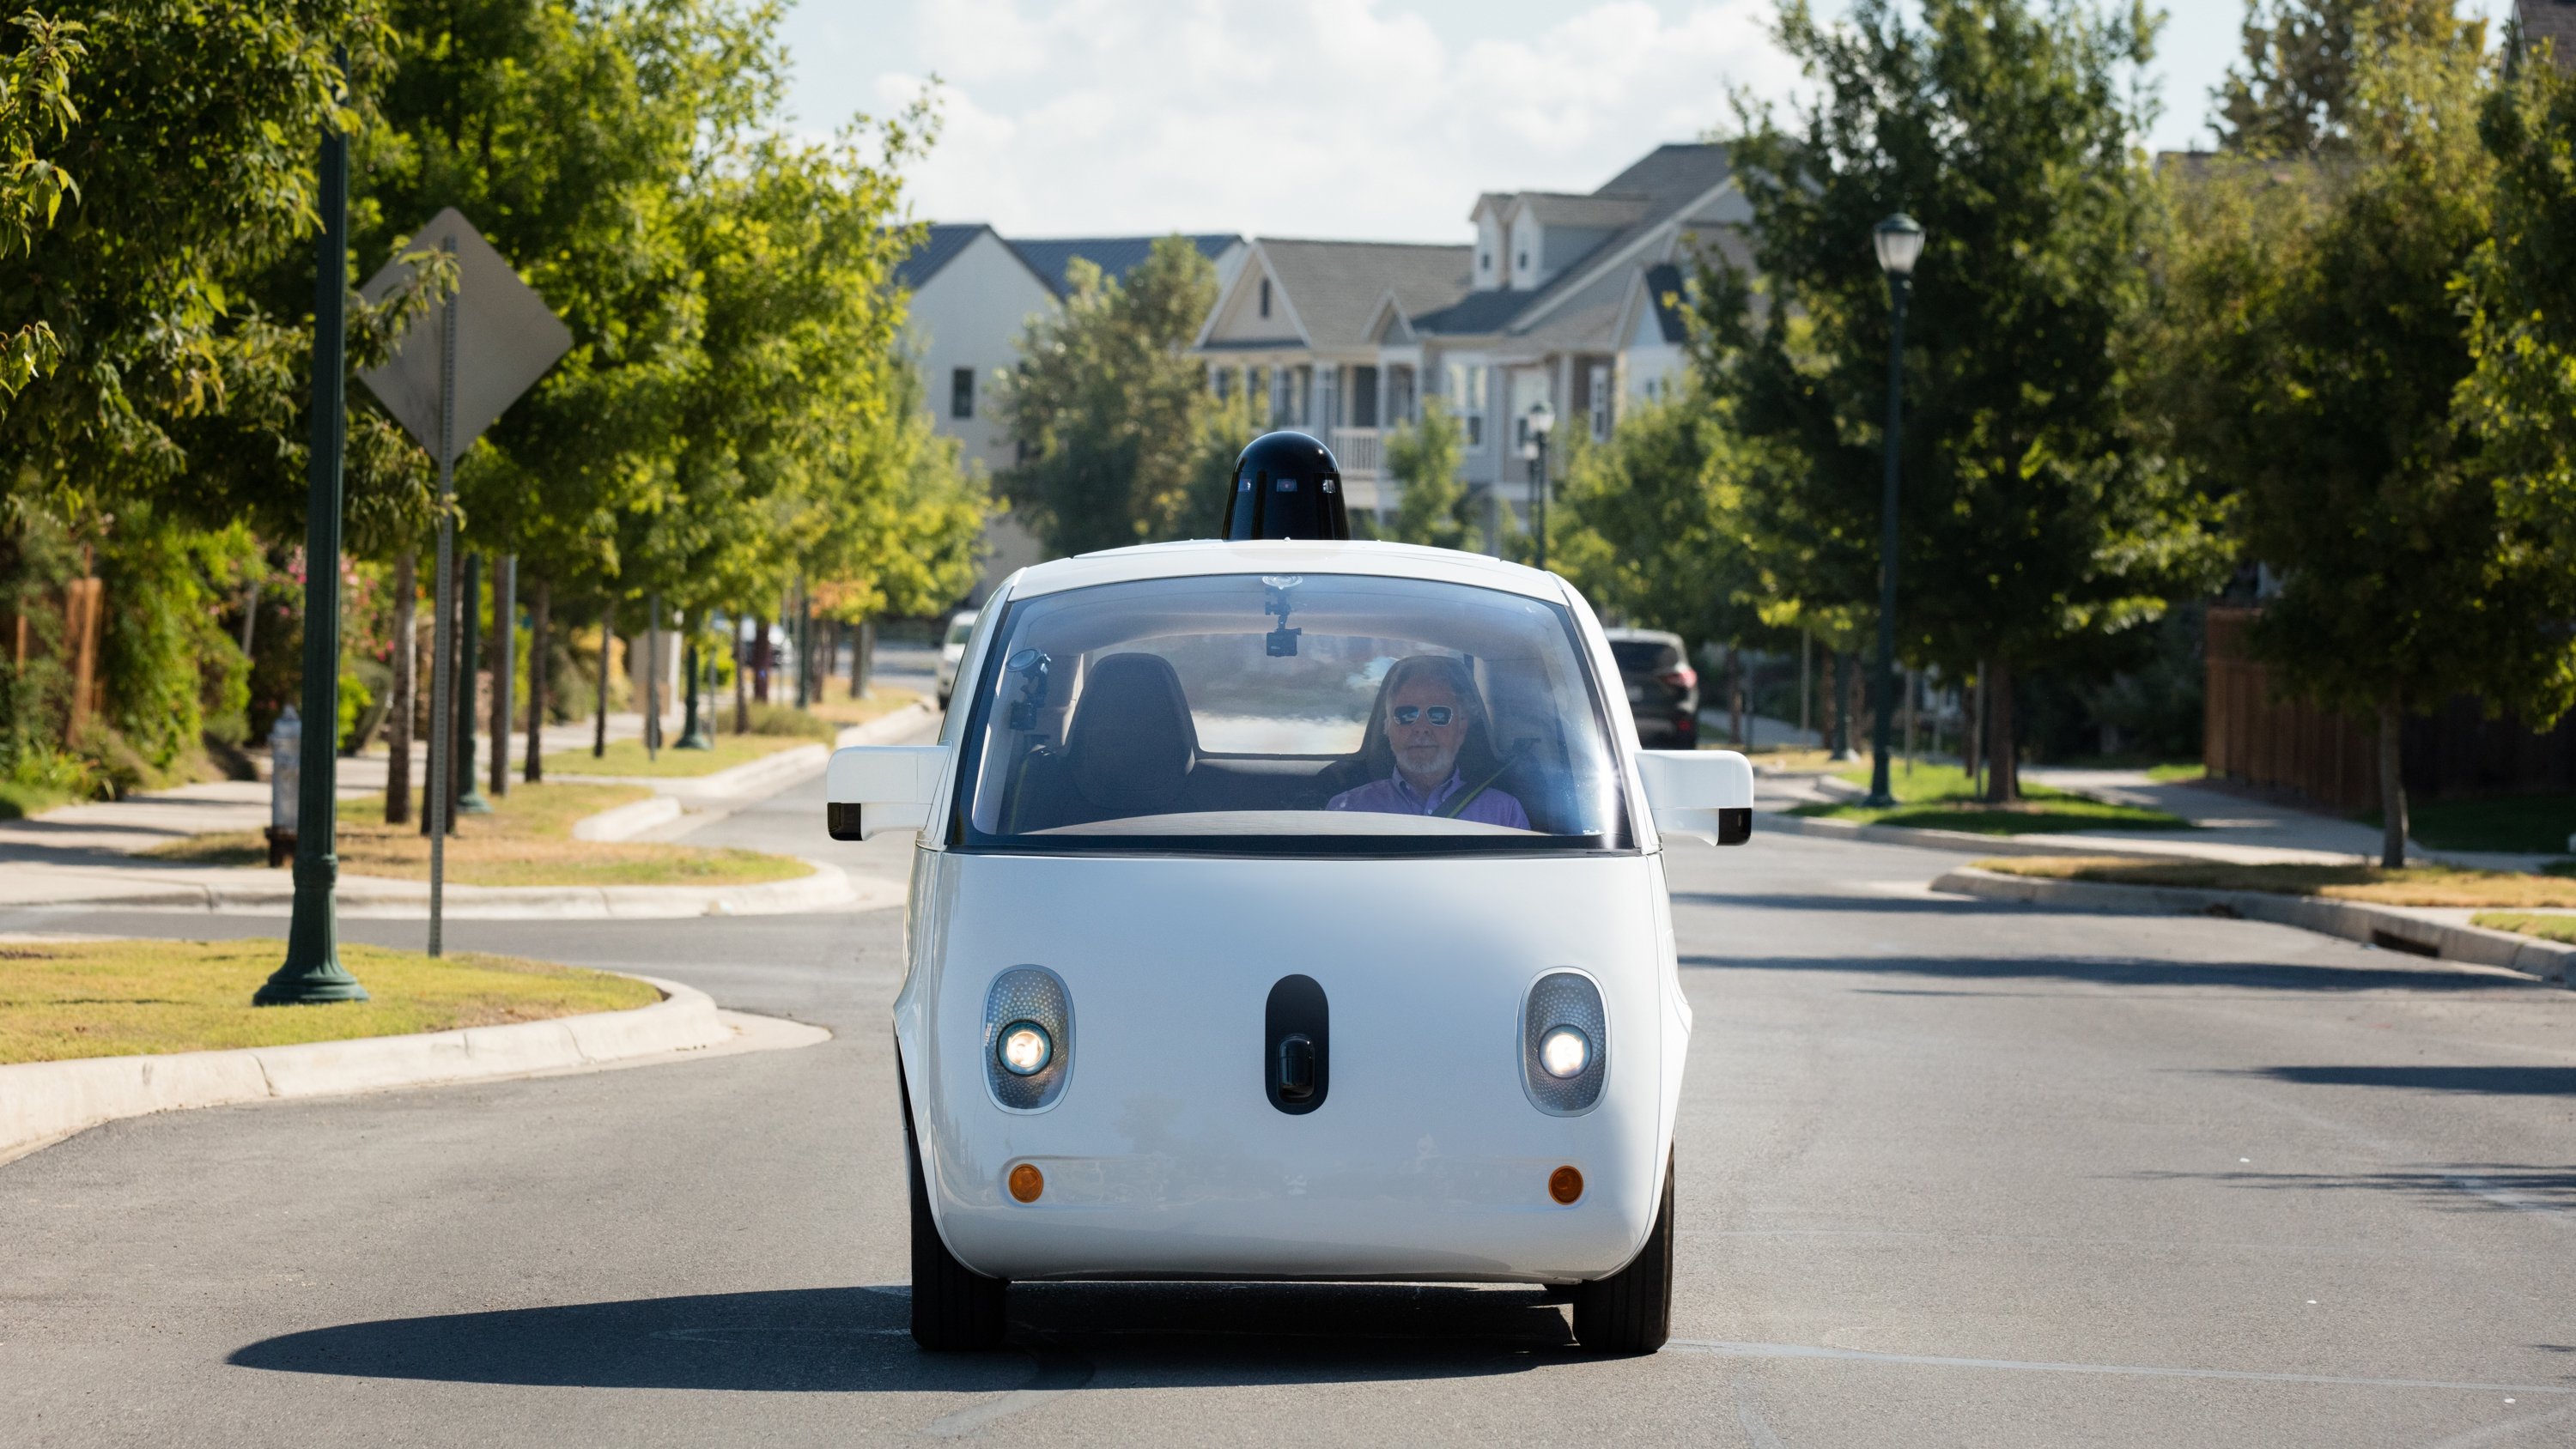 Google (GOOG) is spinning its self-driving car project out into its